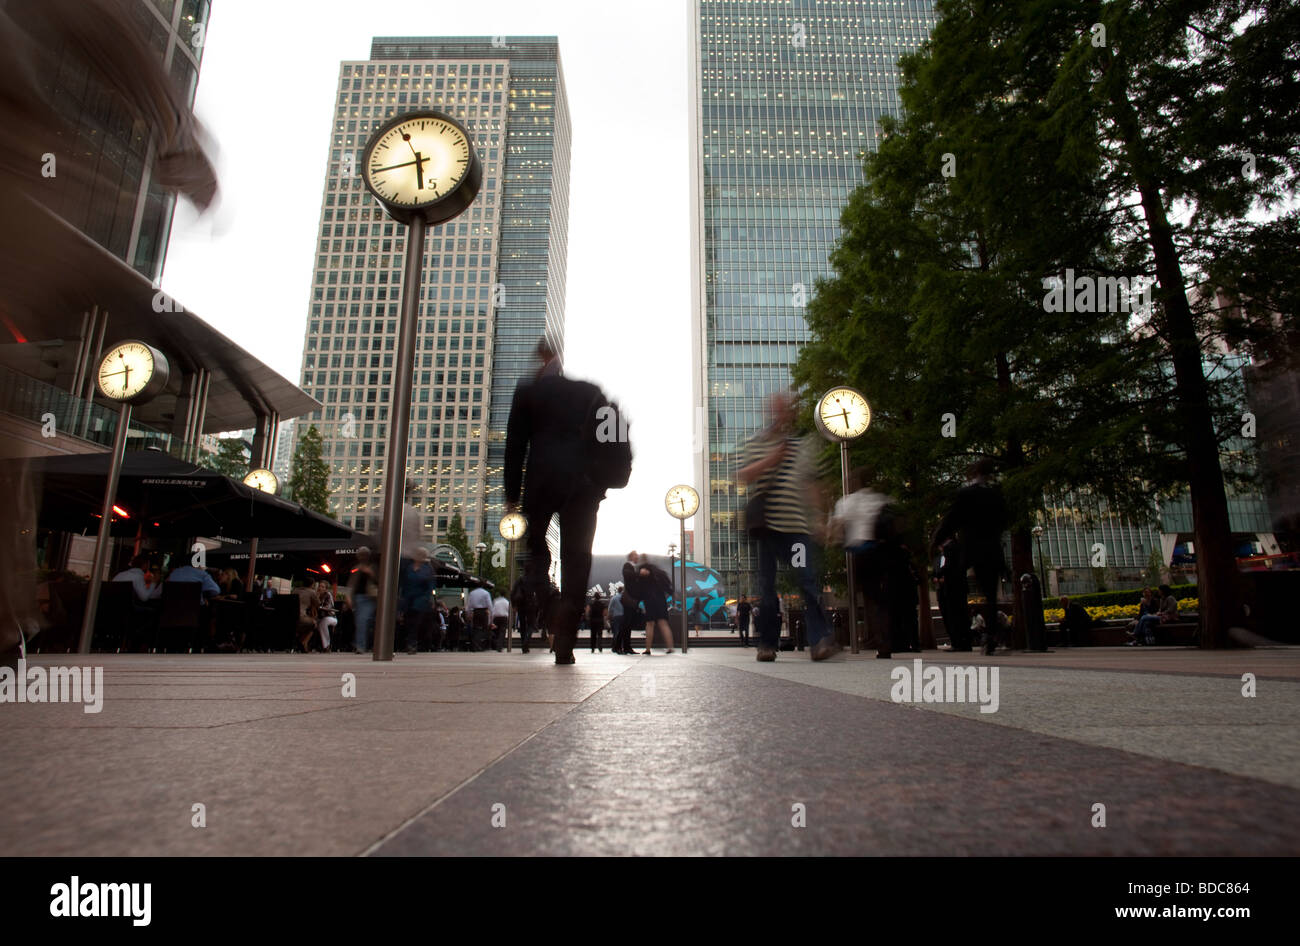 Clocks at financialdistrict Canary Wharf in London - Stock Image